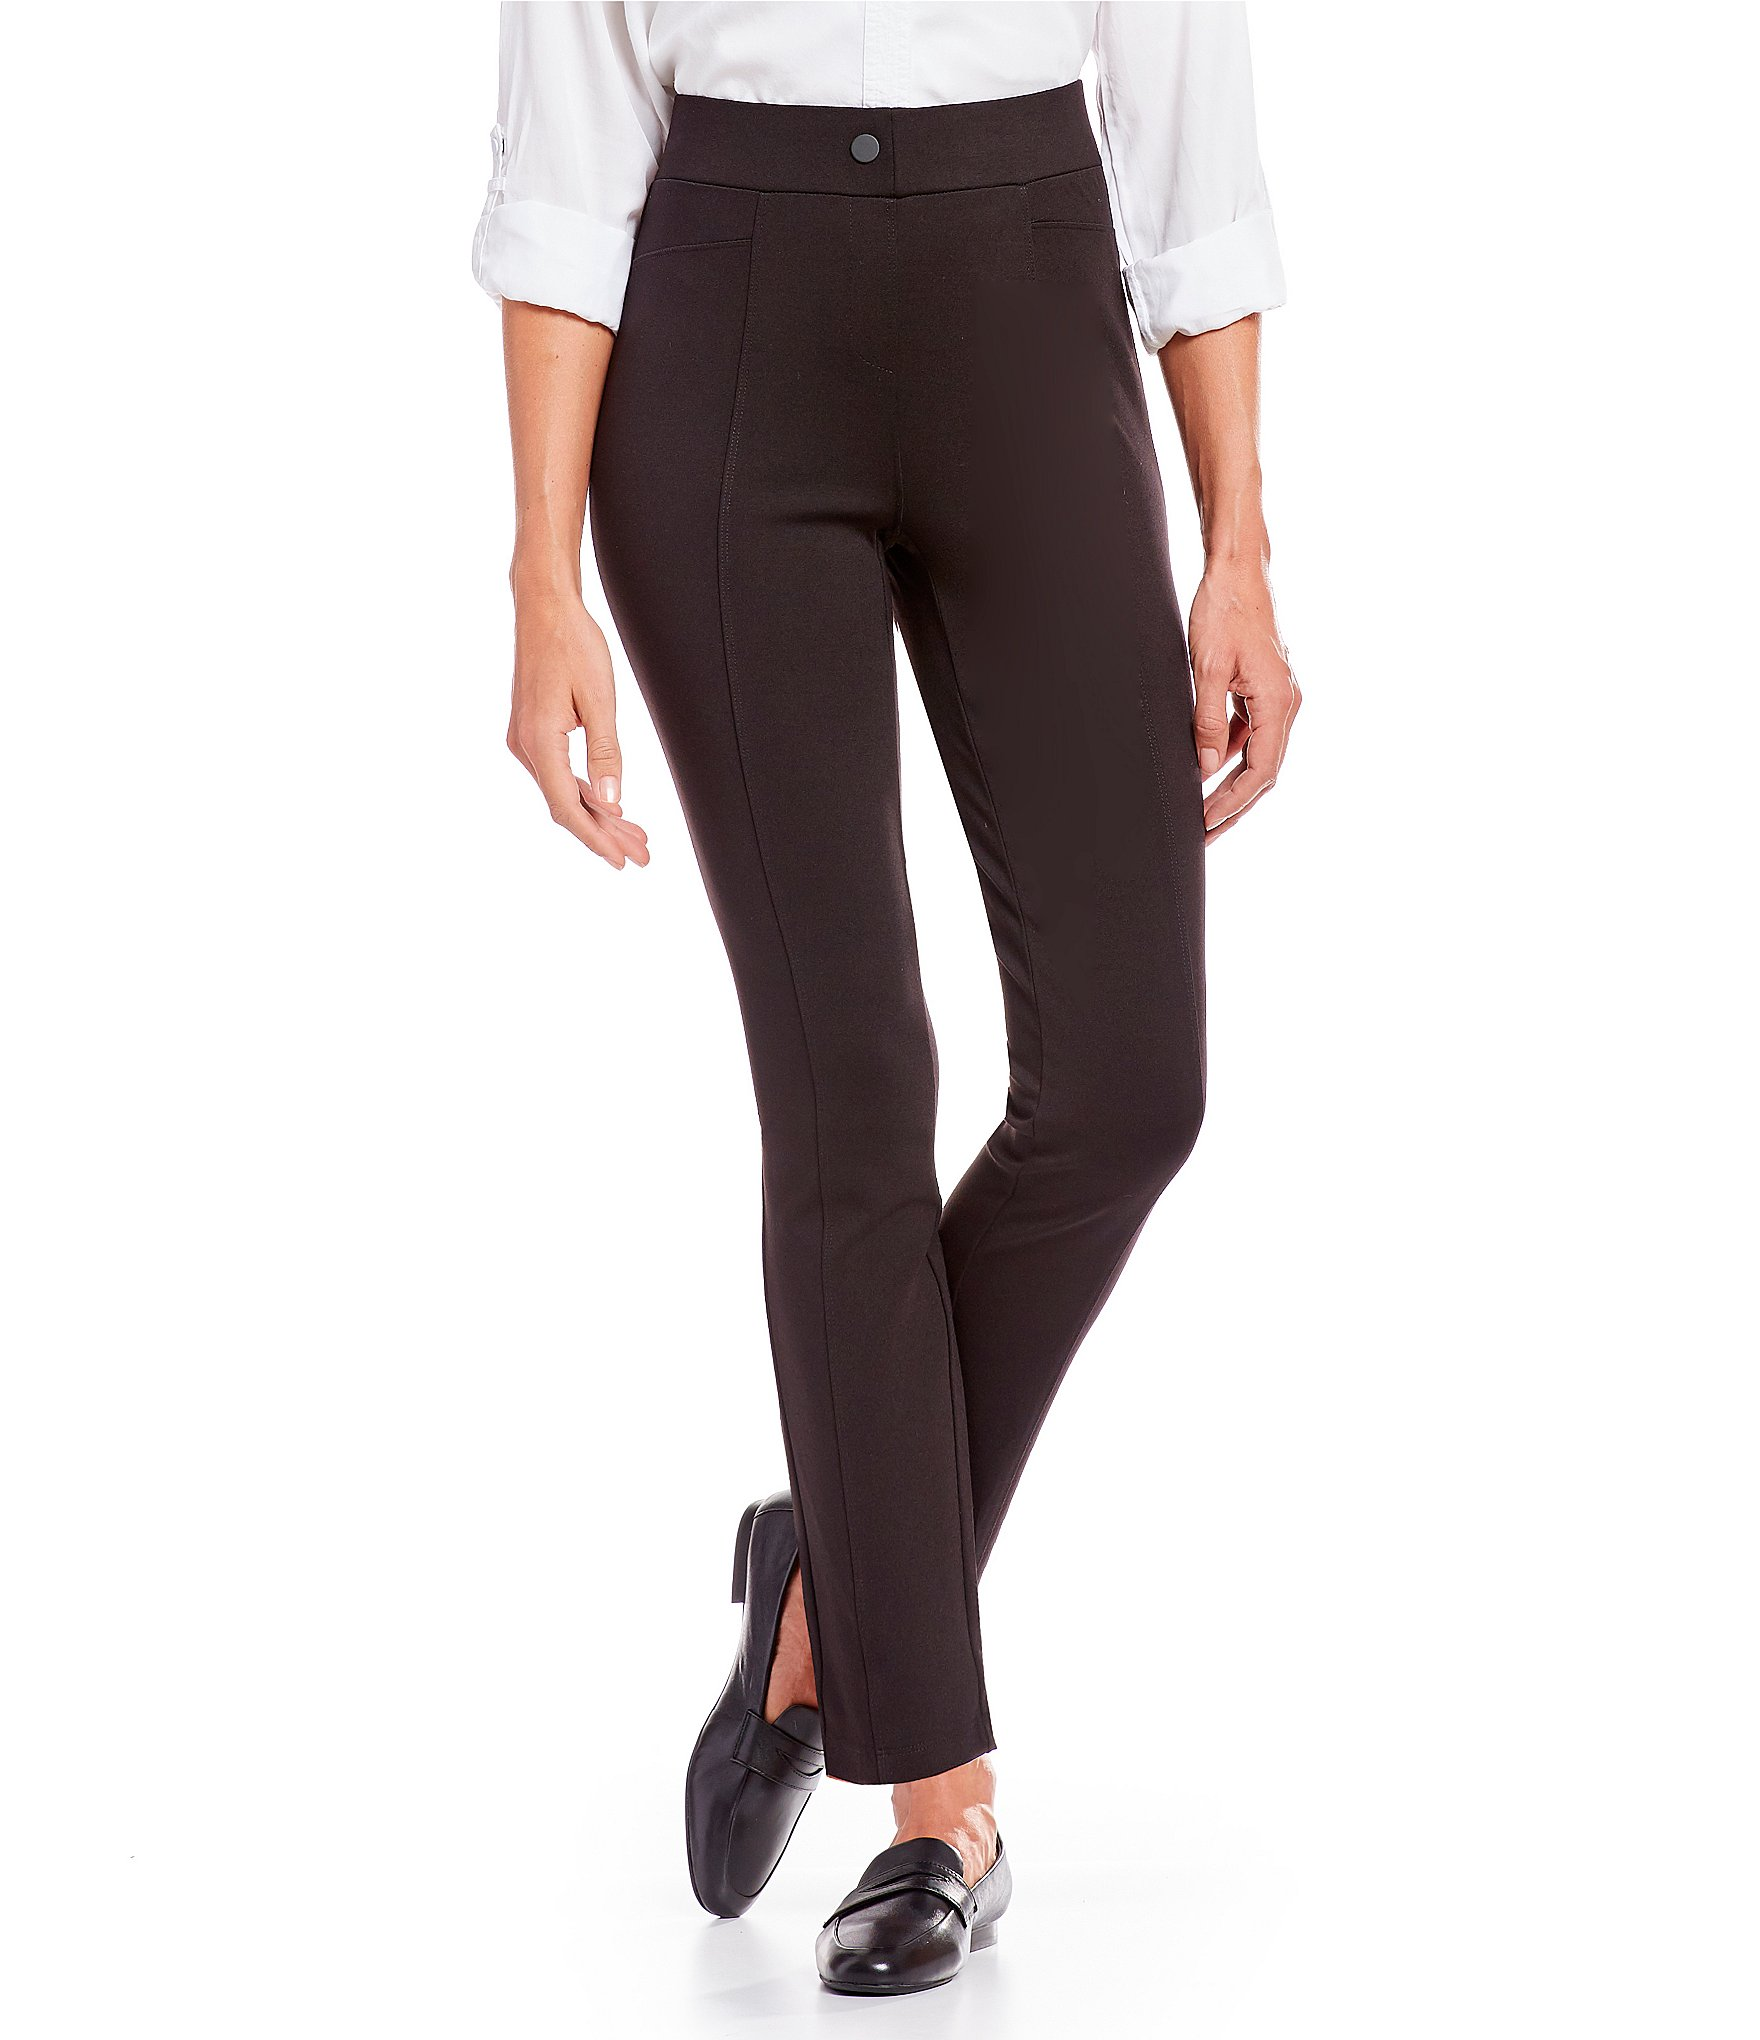 Circle Track Supply >> Intro Petite Size Bella Solid Double Knit Slim Her Straight Leg Pants | Dillard's